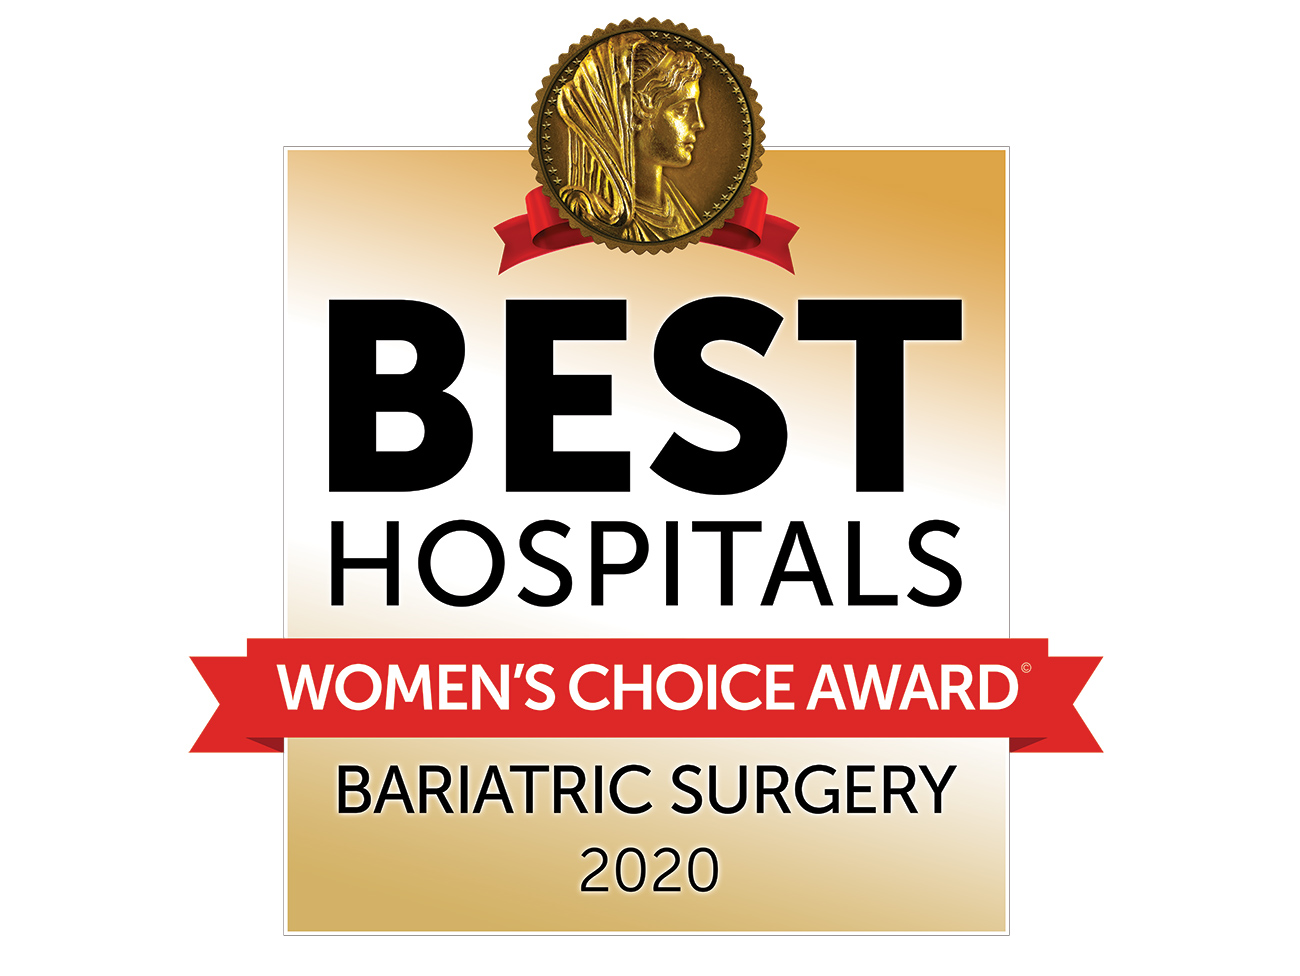 Best Hospitals, Women's Choice Award: Bariatric Surgery, 2020